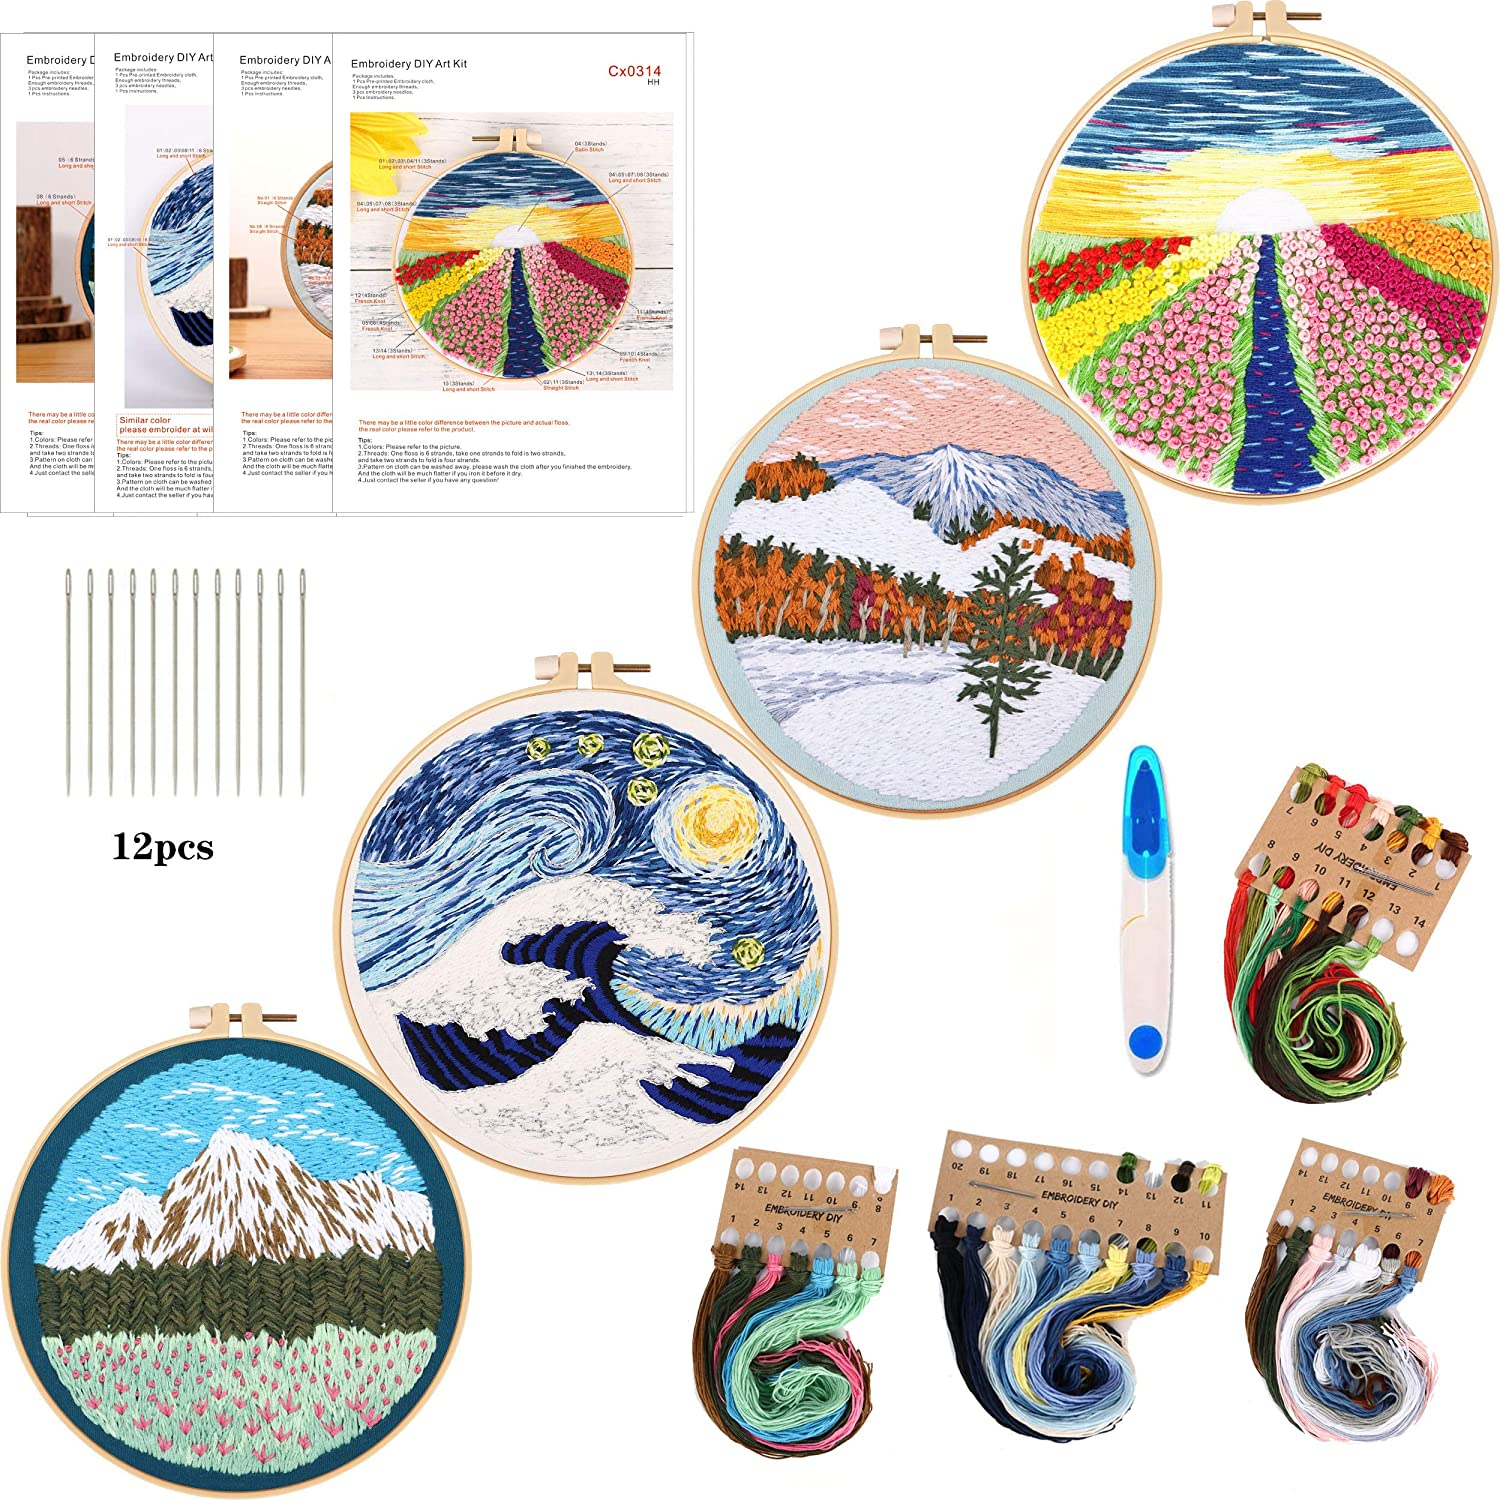 4Pack Embroidery Starter Kit with Pattern and Instructions, DIY Beginner Cross Stitch Kit Include 1 Embroidery Hoop,4 Embroidery Clothes with Scenery Pattern,Color Threads (Embroidery Kit-I)